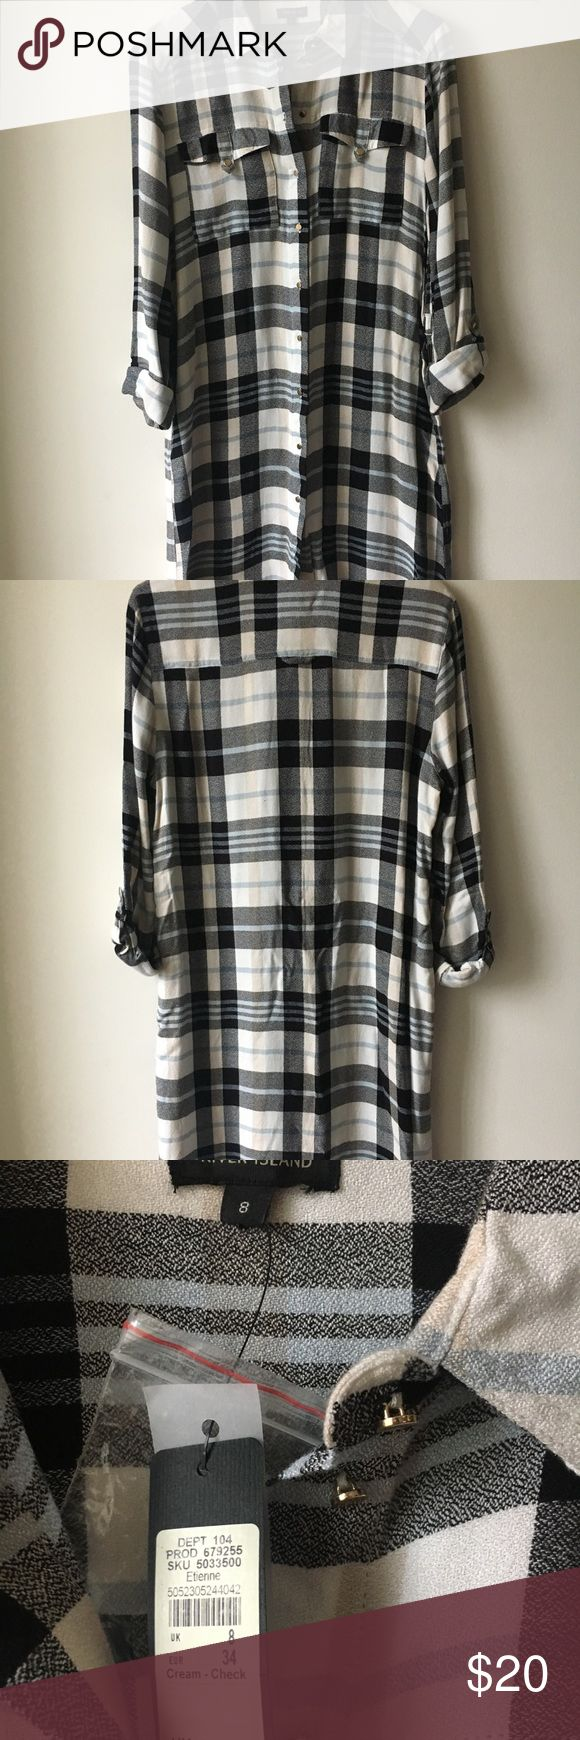 River Island Flannel Dress - Sz 4 (UK 8) - NWT Very cute and good length. Please message me if you have questions! River Island Dresses Long Sleeve